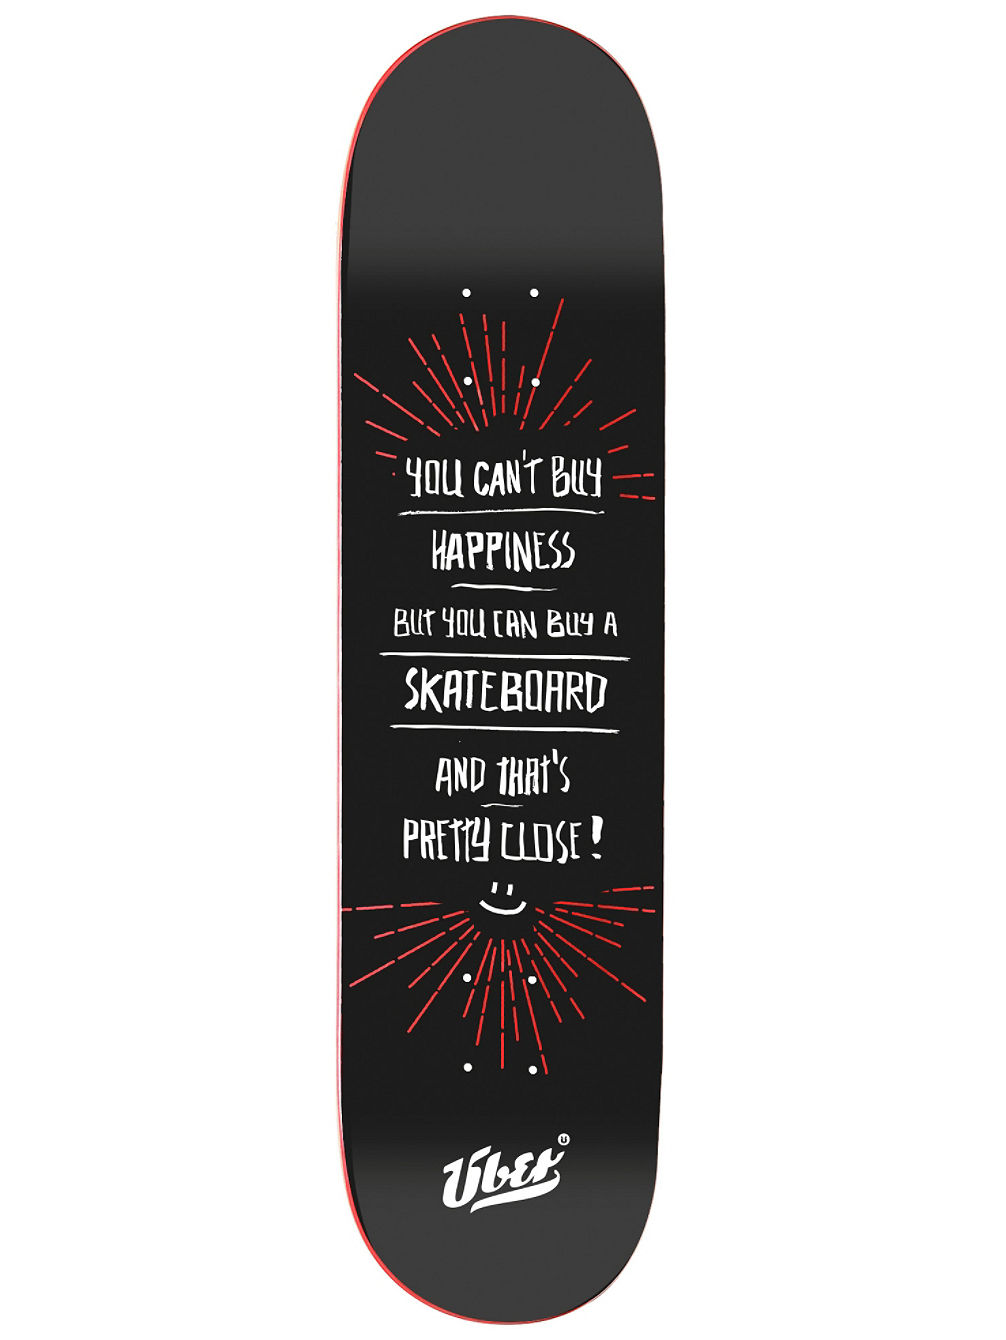 "Happiness 8.0"" Skate Deck"